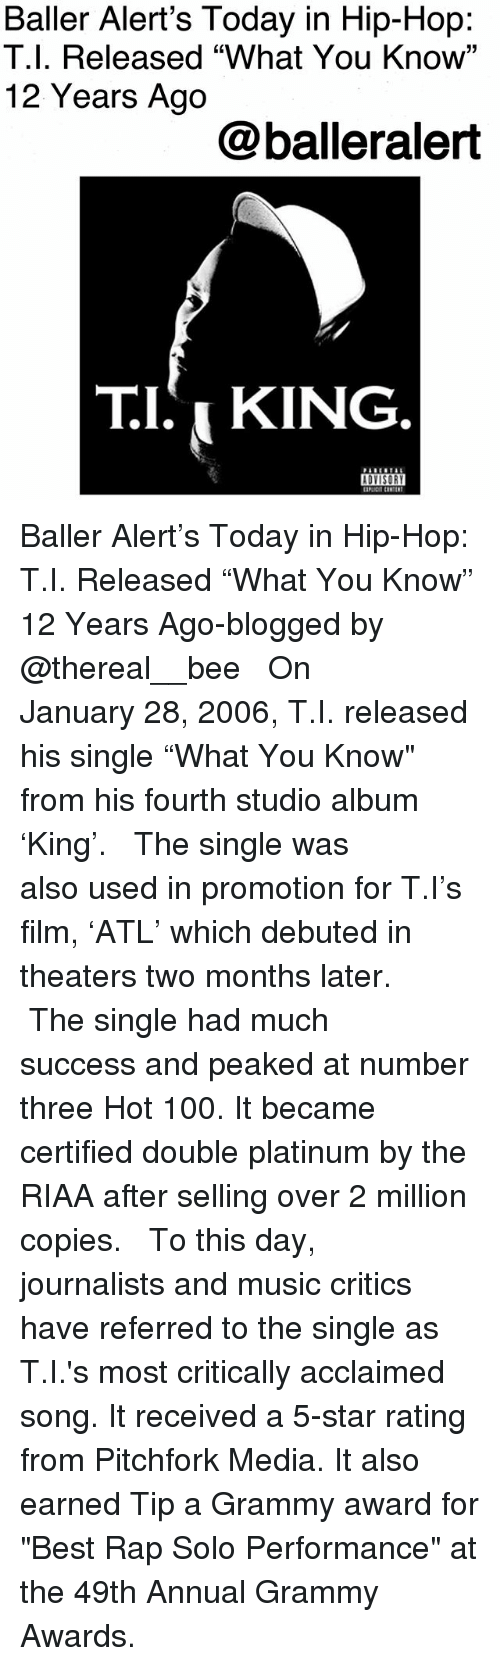 """Grammy Awards: Baller Alert's Today in Hip-Hop:  T.l. Released """"What You Know'""""  12 Years Ago  @balleralert  T.I. i KING Baller Alert's Today in Hip-Hop: T.I. Released """"What You Know"""" 12 Years Ago-blogged by @thereal__bee ⠀⠀⠀⠀⠀⠀⠀ ⠀⠀⠀⠀ On January 28, 2006, T.I. released his single """"What You Know"""" from his fourth studio album 'King'. ⠀⠀⠀⠀⠀⠀⠀ ⠀⠀⠀⠀ The single was also used in promotion for T.I's film, 'ATL' which debuted in theaters two months later. ⠀⠀⠀⠀⠀⠀⠀ ⠀⠀⠀⠀ The single had much success and peaked at number three Hot 100. It became certified double platinum by the RIAA after selling over 2 million copies. ⠀⠀⠀⠀⠀⠀⠀ ⠀⠀⠀⠀ To this day, journalists and music critics have referred to the single as T.I.'s most critically acclaimed song. It received a 5-star rating from Pitchfork Media. It also earned Tip a Grammy award for """"Best Rap Solo Performance"""" at the 49th Annual Grammy Awards."""